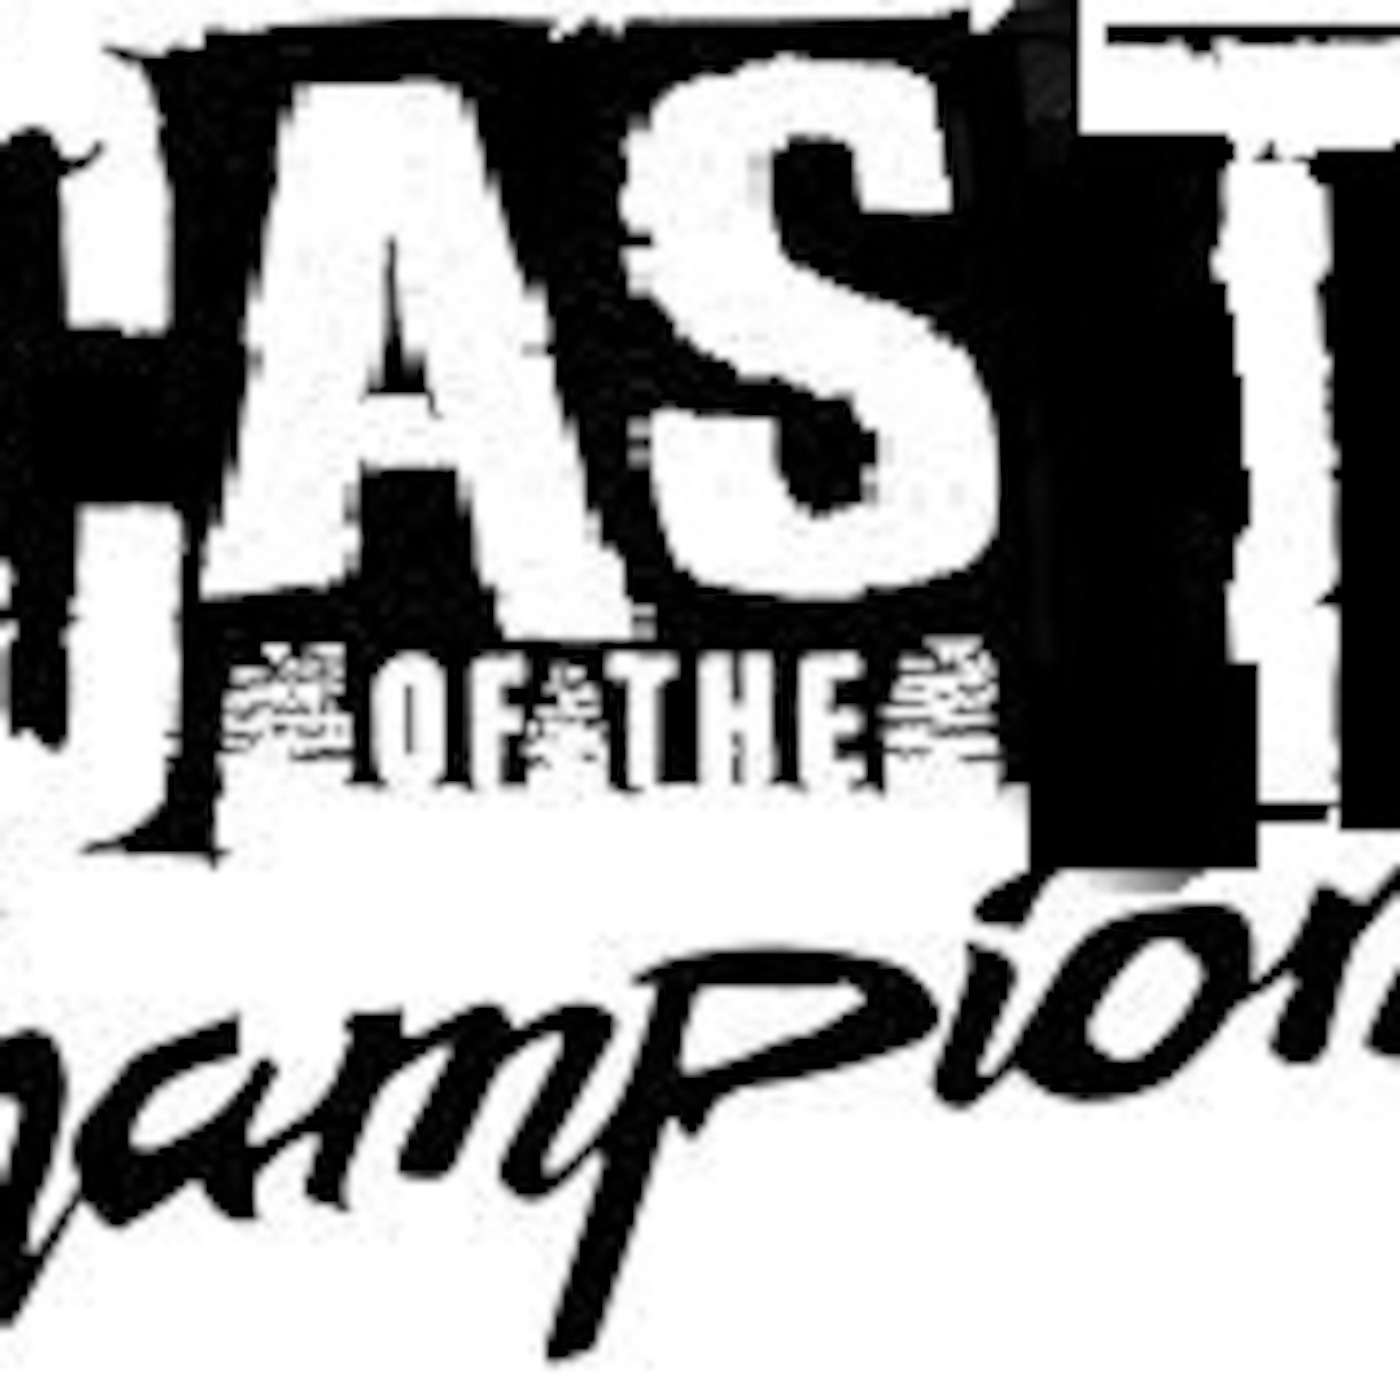 Cast of the Champions